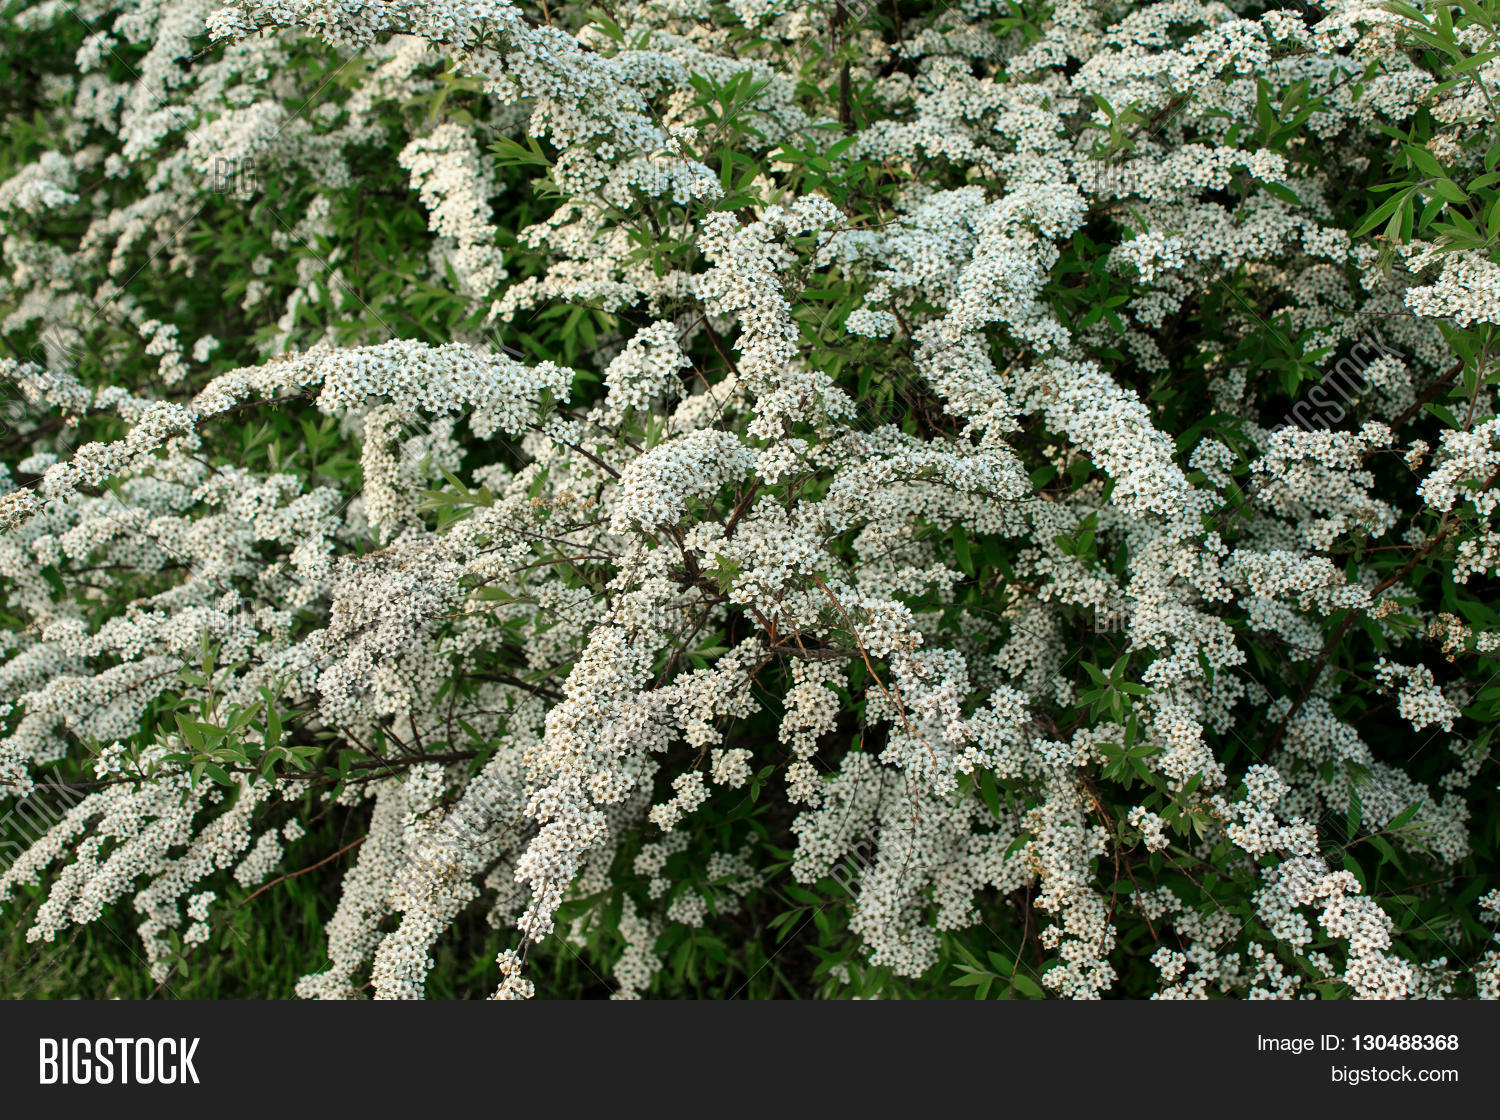 Shrub small white image photo free trial bigstock shrub with small white flowers blooming in spring mightylinksfo